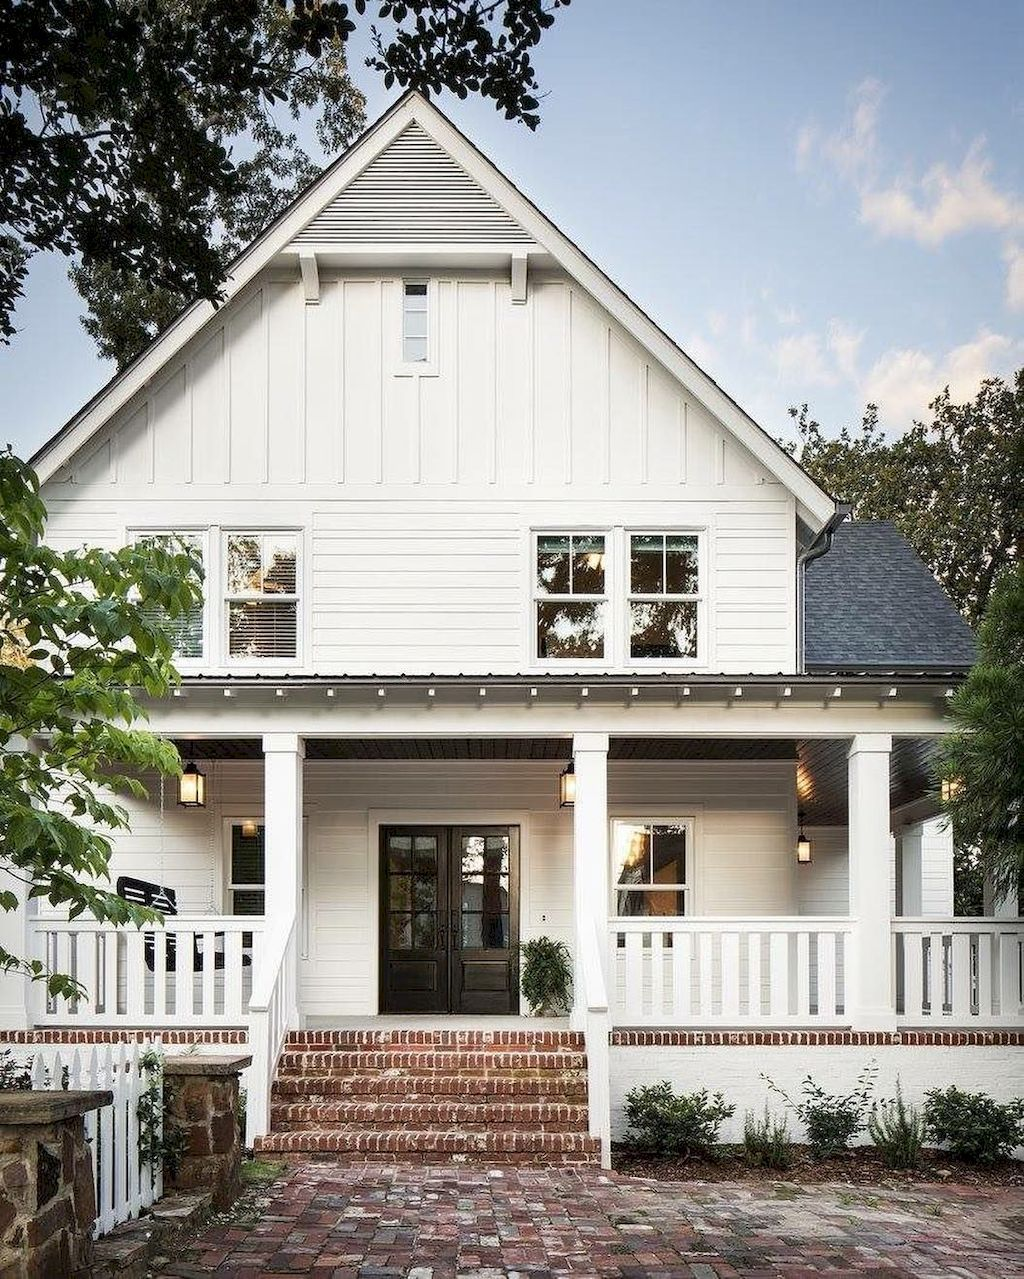 90 Incredible Modern Farmhouse Exterior Design Ideas 63: 90 Incredible Modern Farmhouse Exterior Design Ideas (4